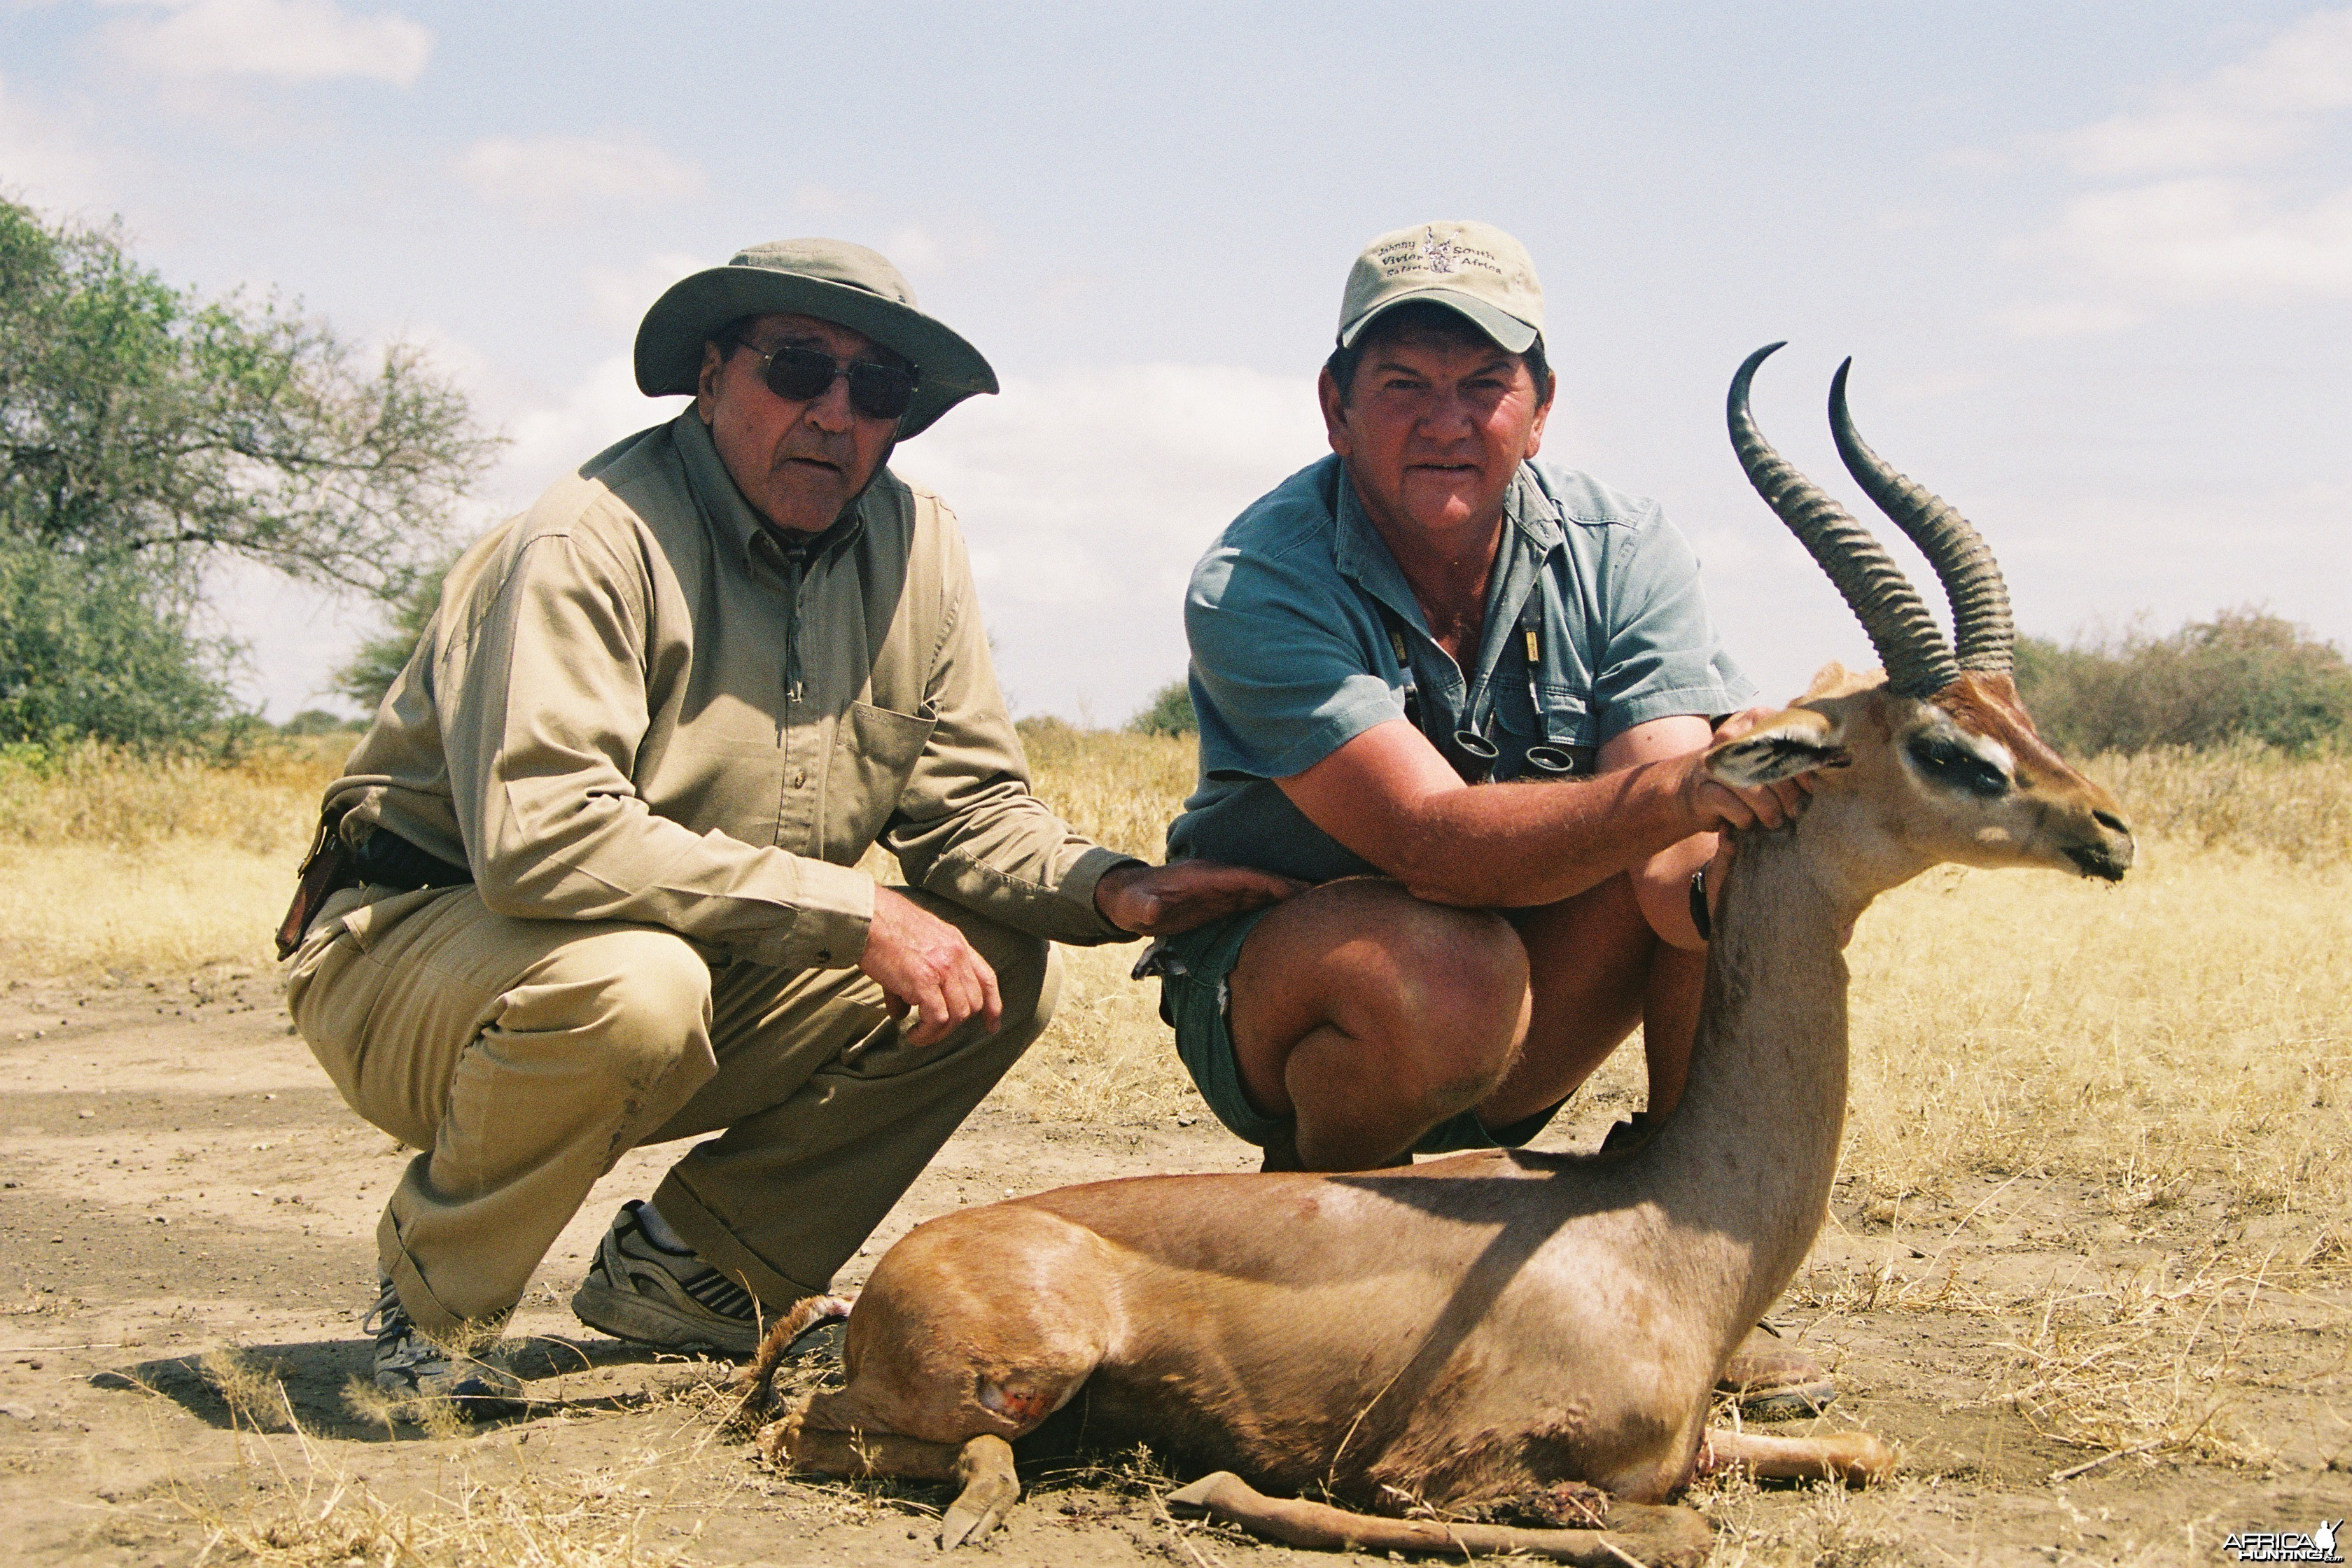 Hunting Gerenuk with Wintershoek Johnny Vivier Safaris in SA